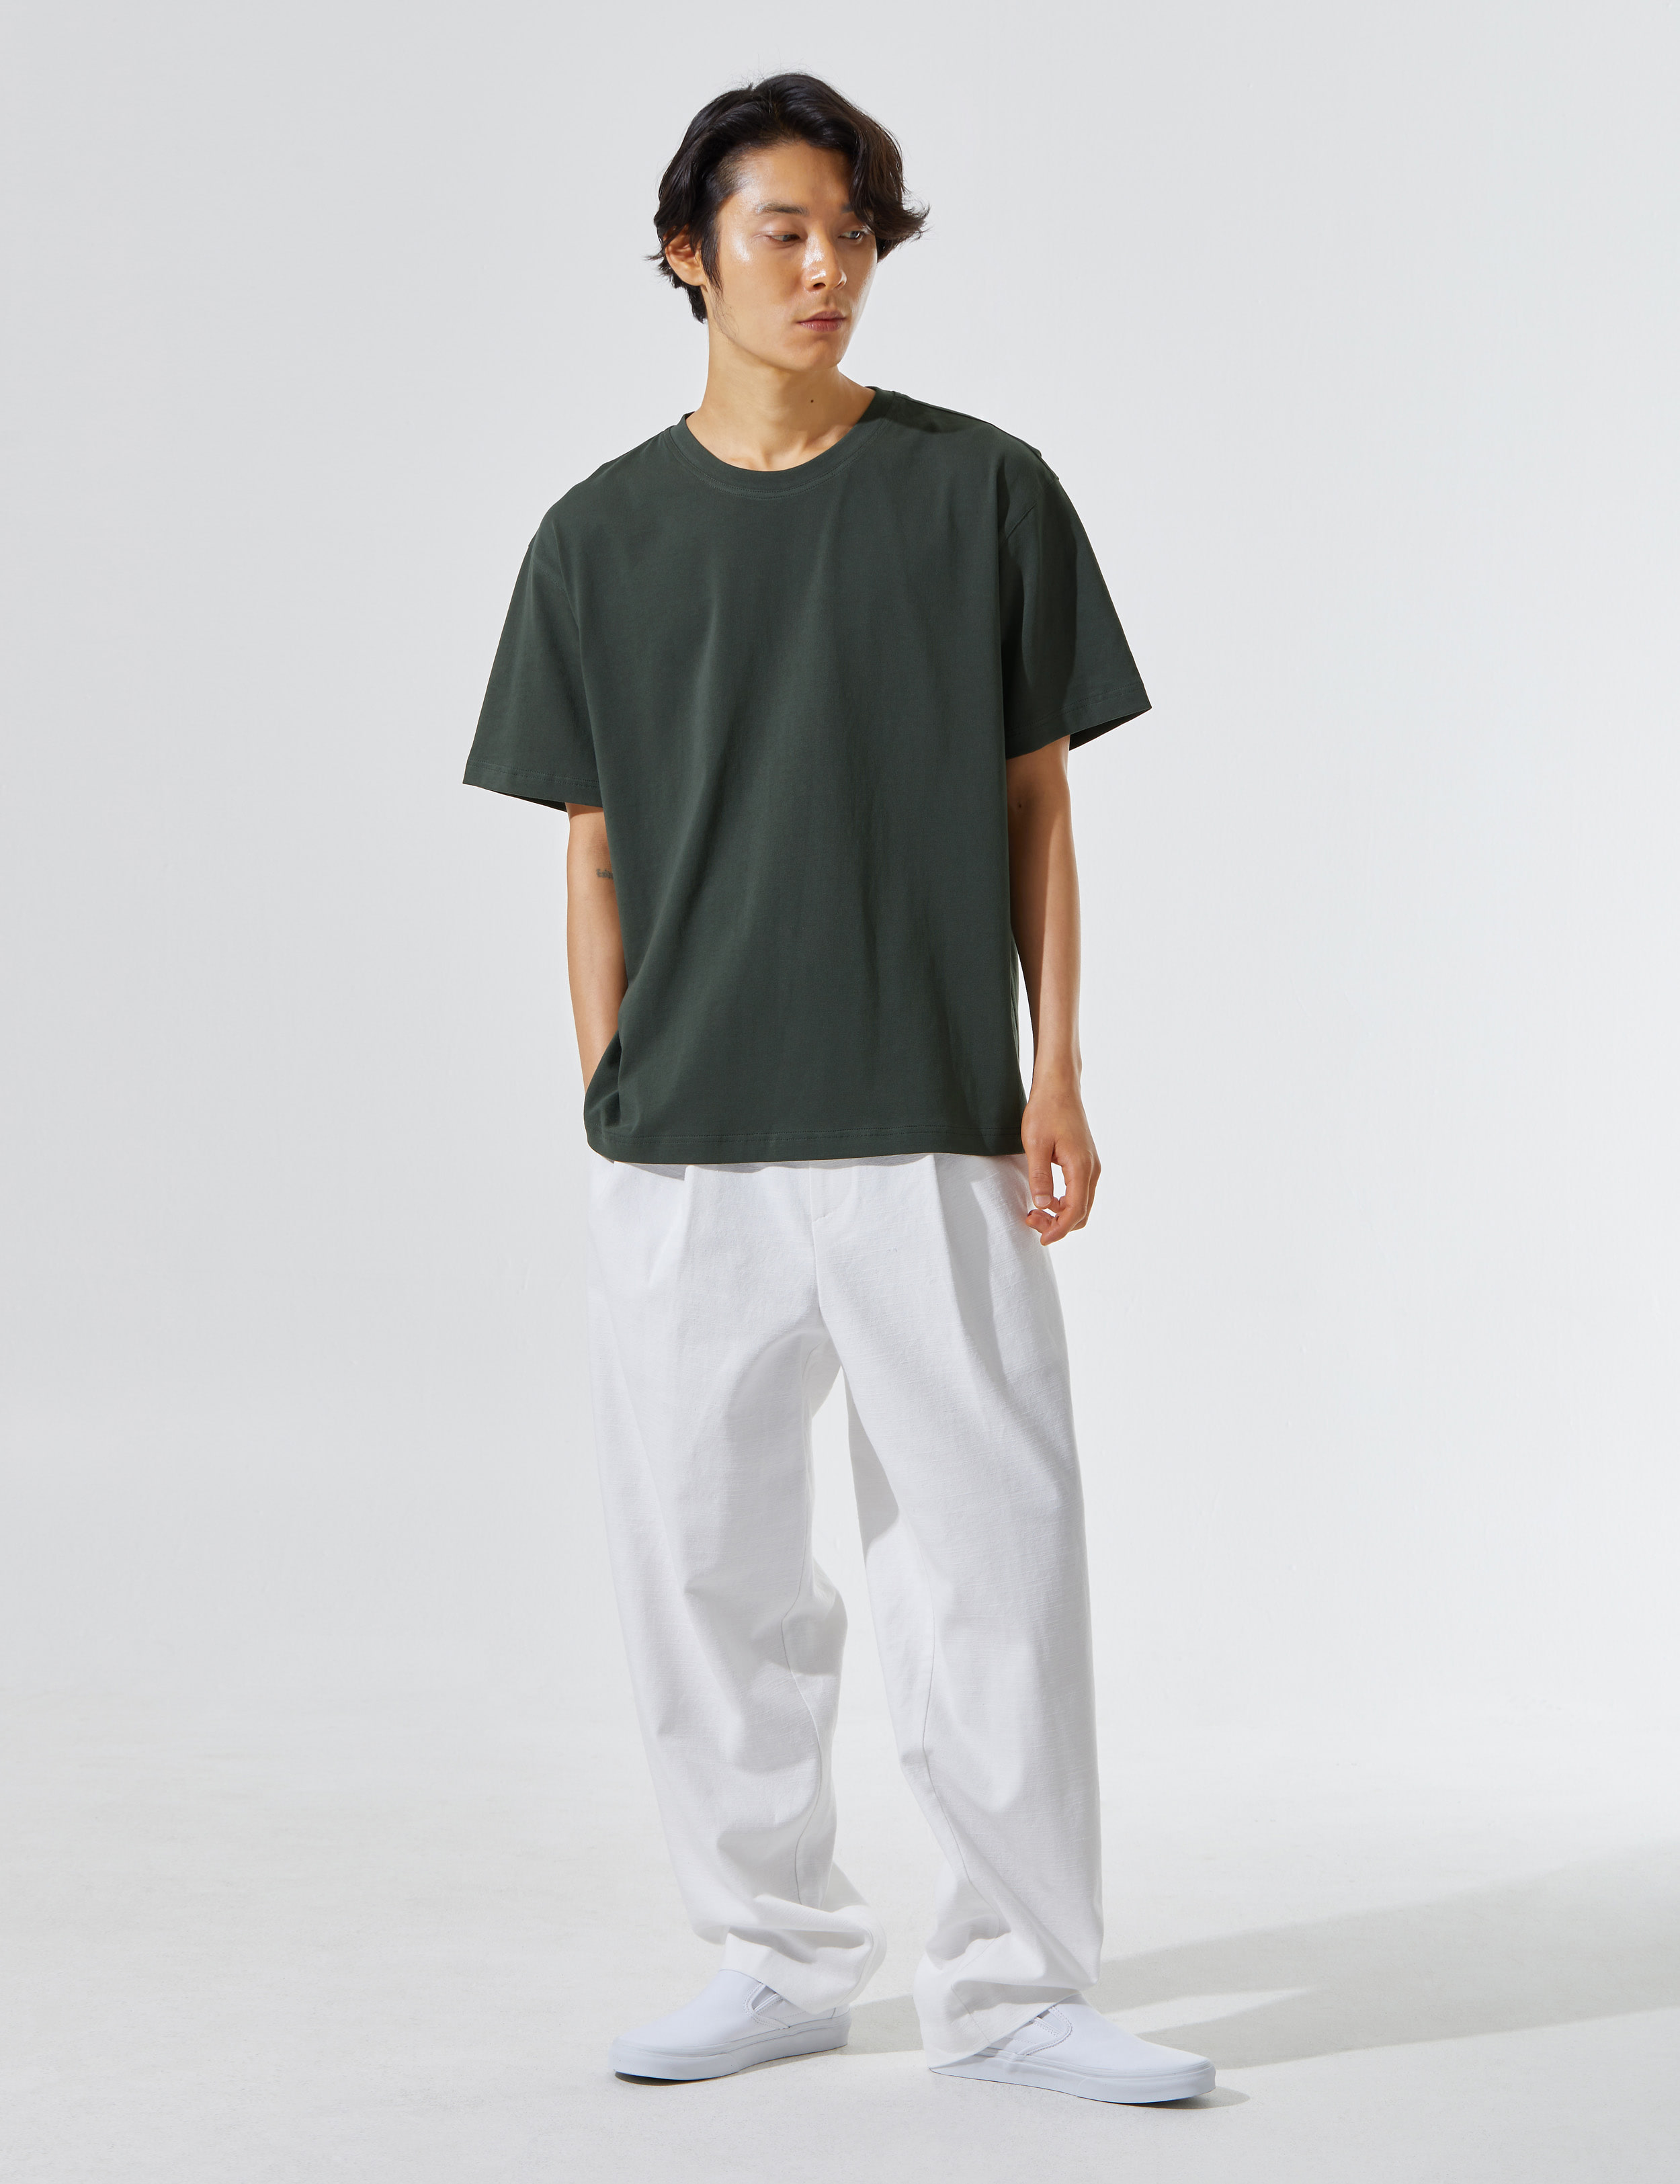 N.7 Undetailed pants White